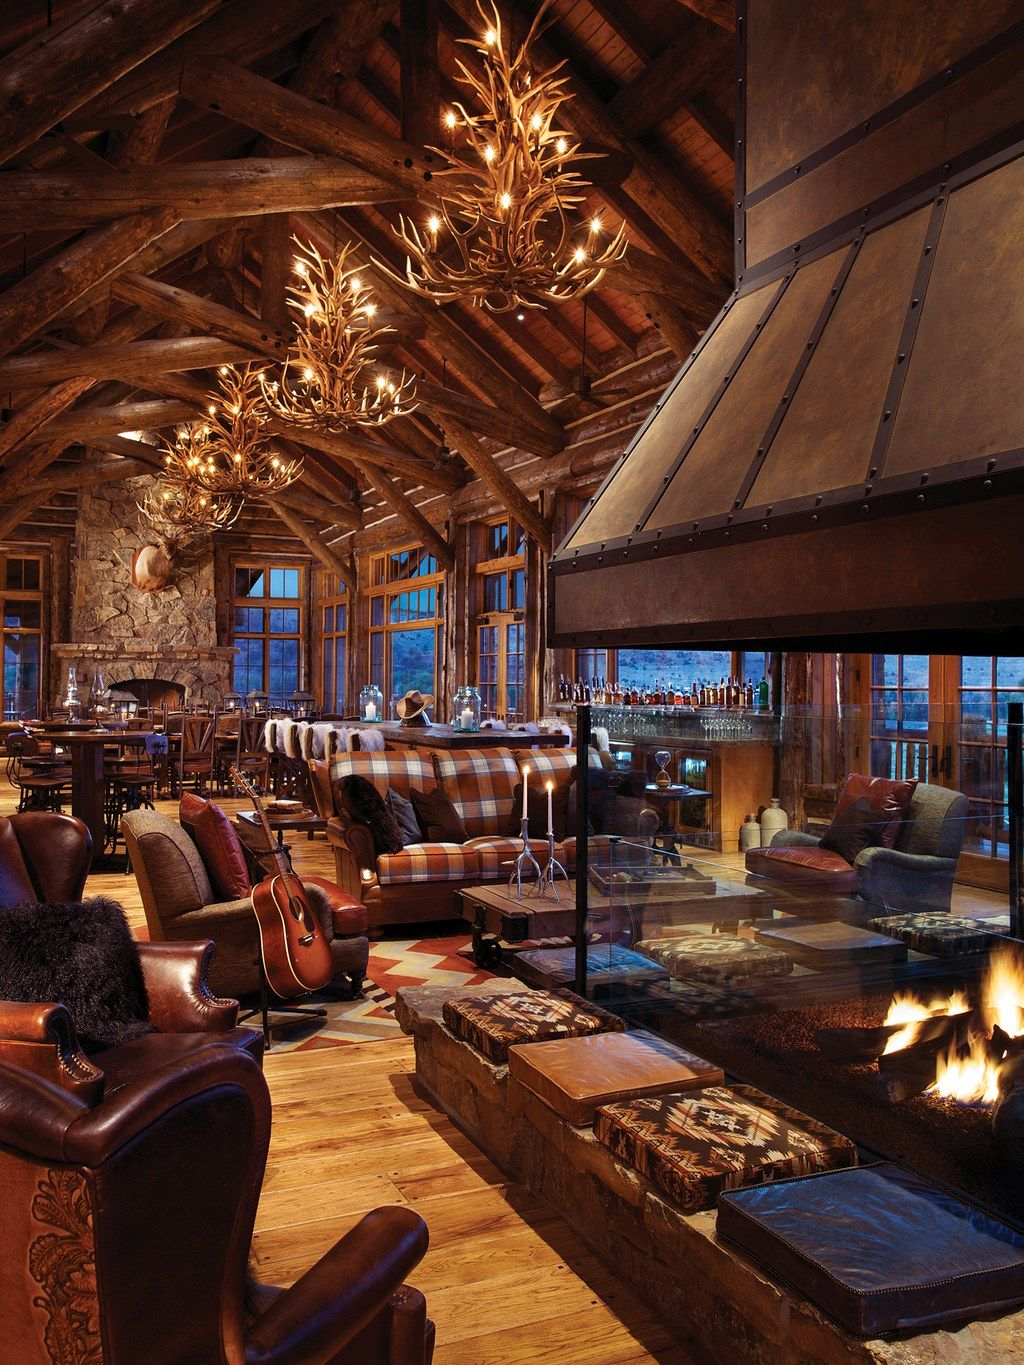 The Lodge Spa At Brush Creek Ranch In Saratoga Wy